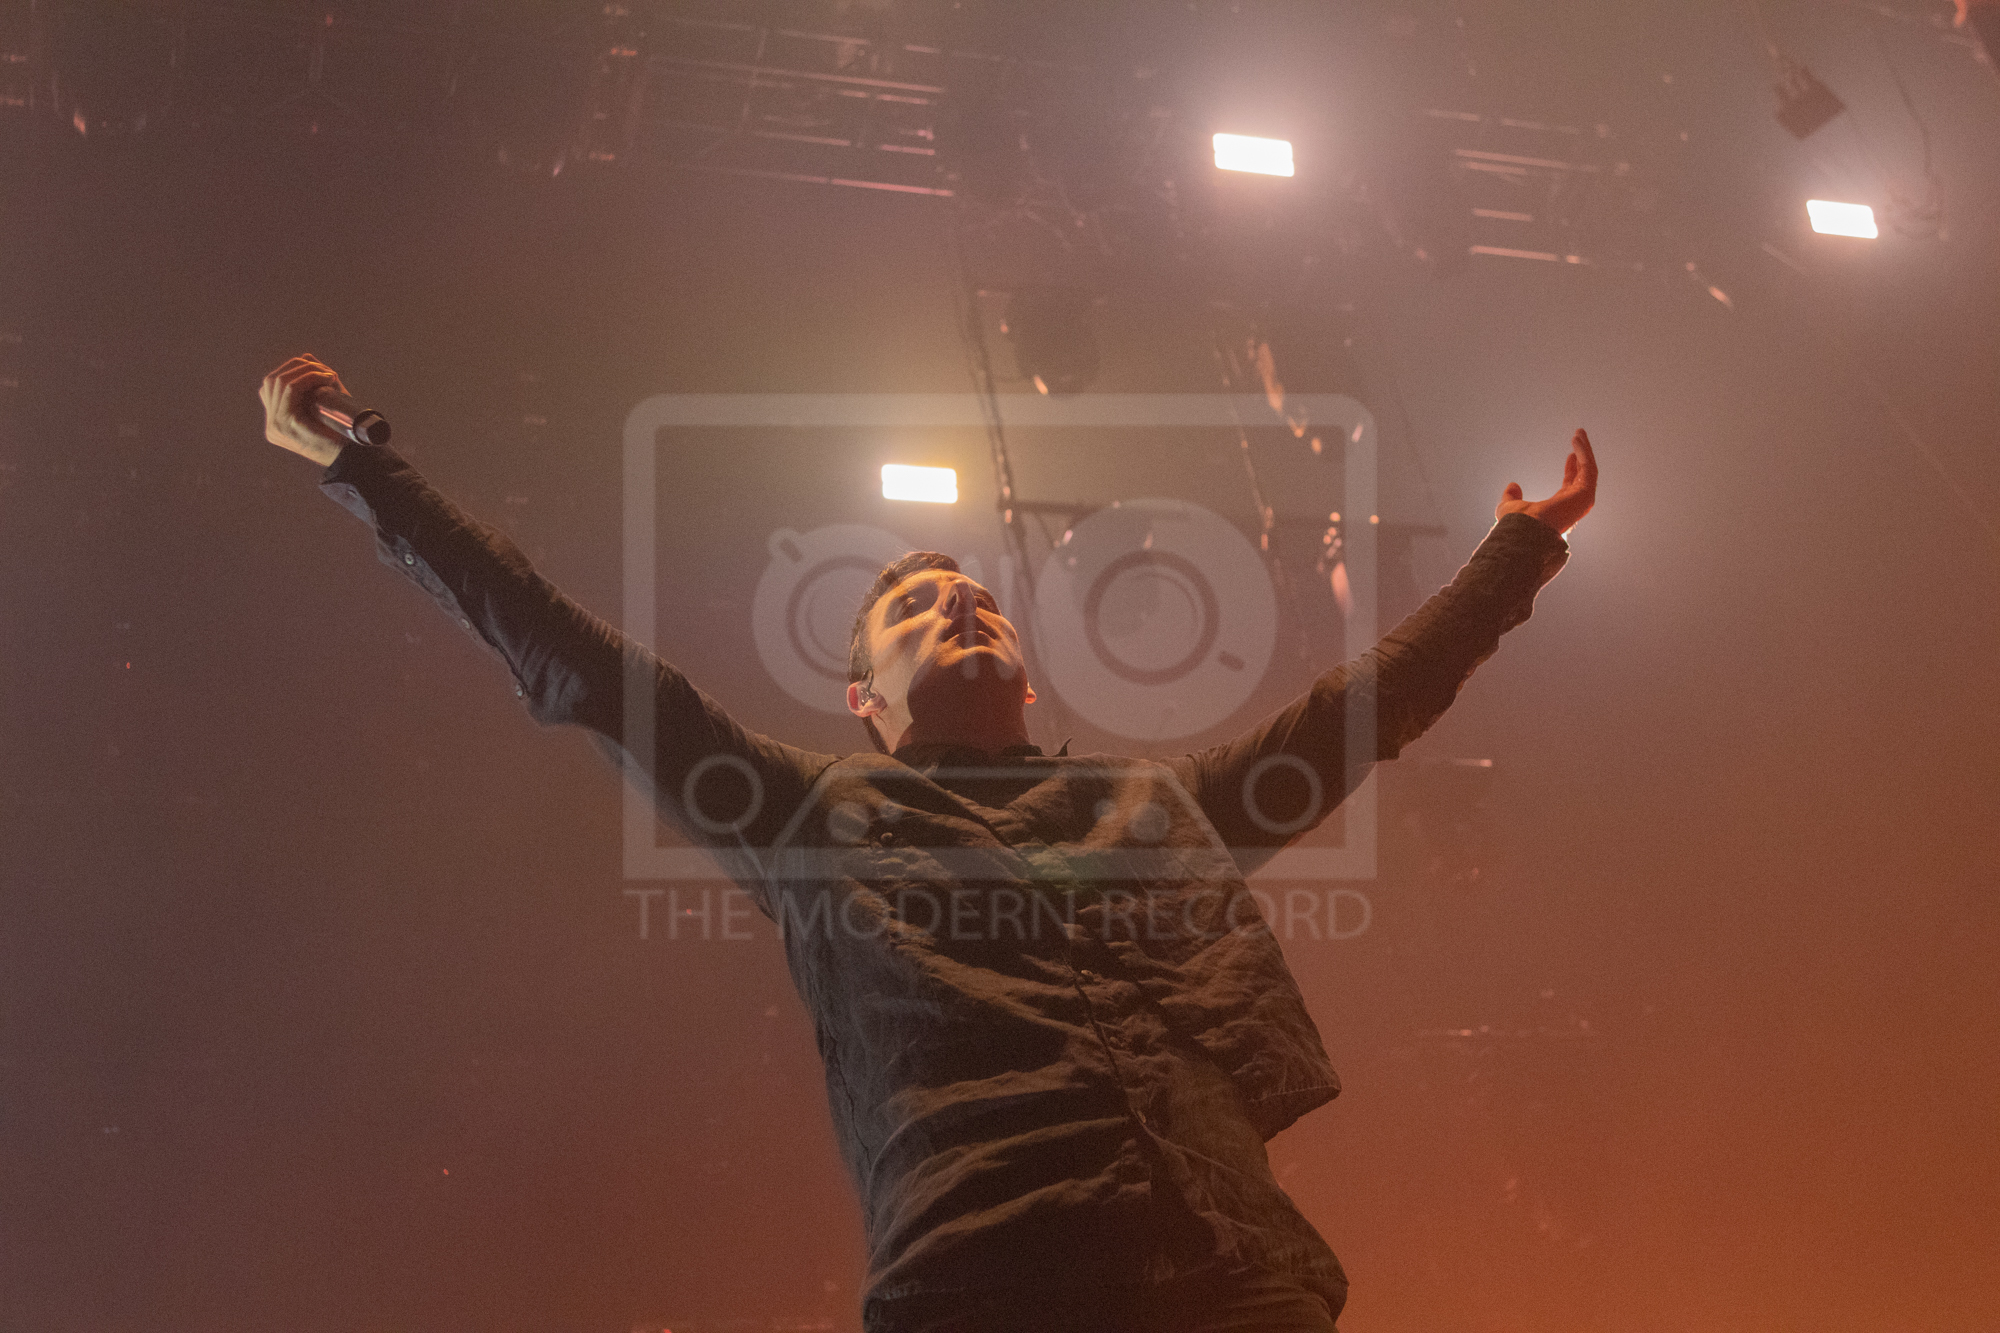 PARKWAY DRIVE PERFORMING AT MANCHESTER'S O2 APOLLO - 29.01.2019  PICTURE BY: WILL GORMAN PHOTOGRAPHY